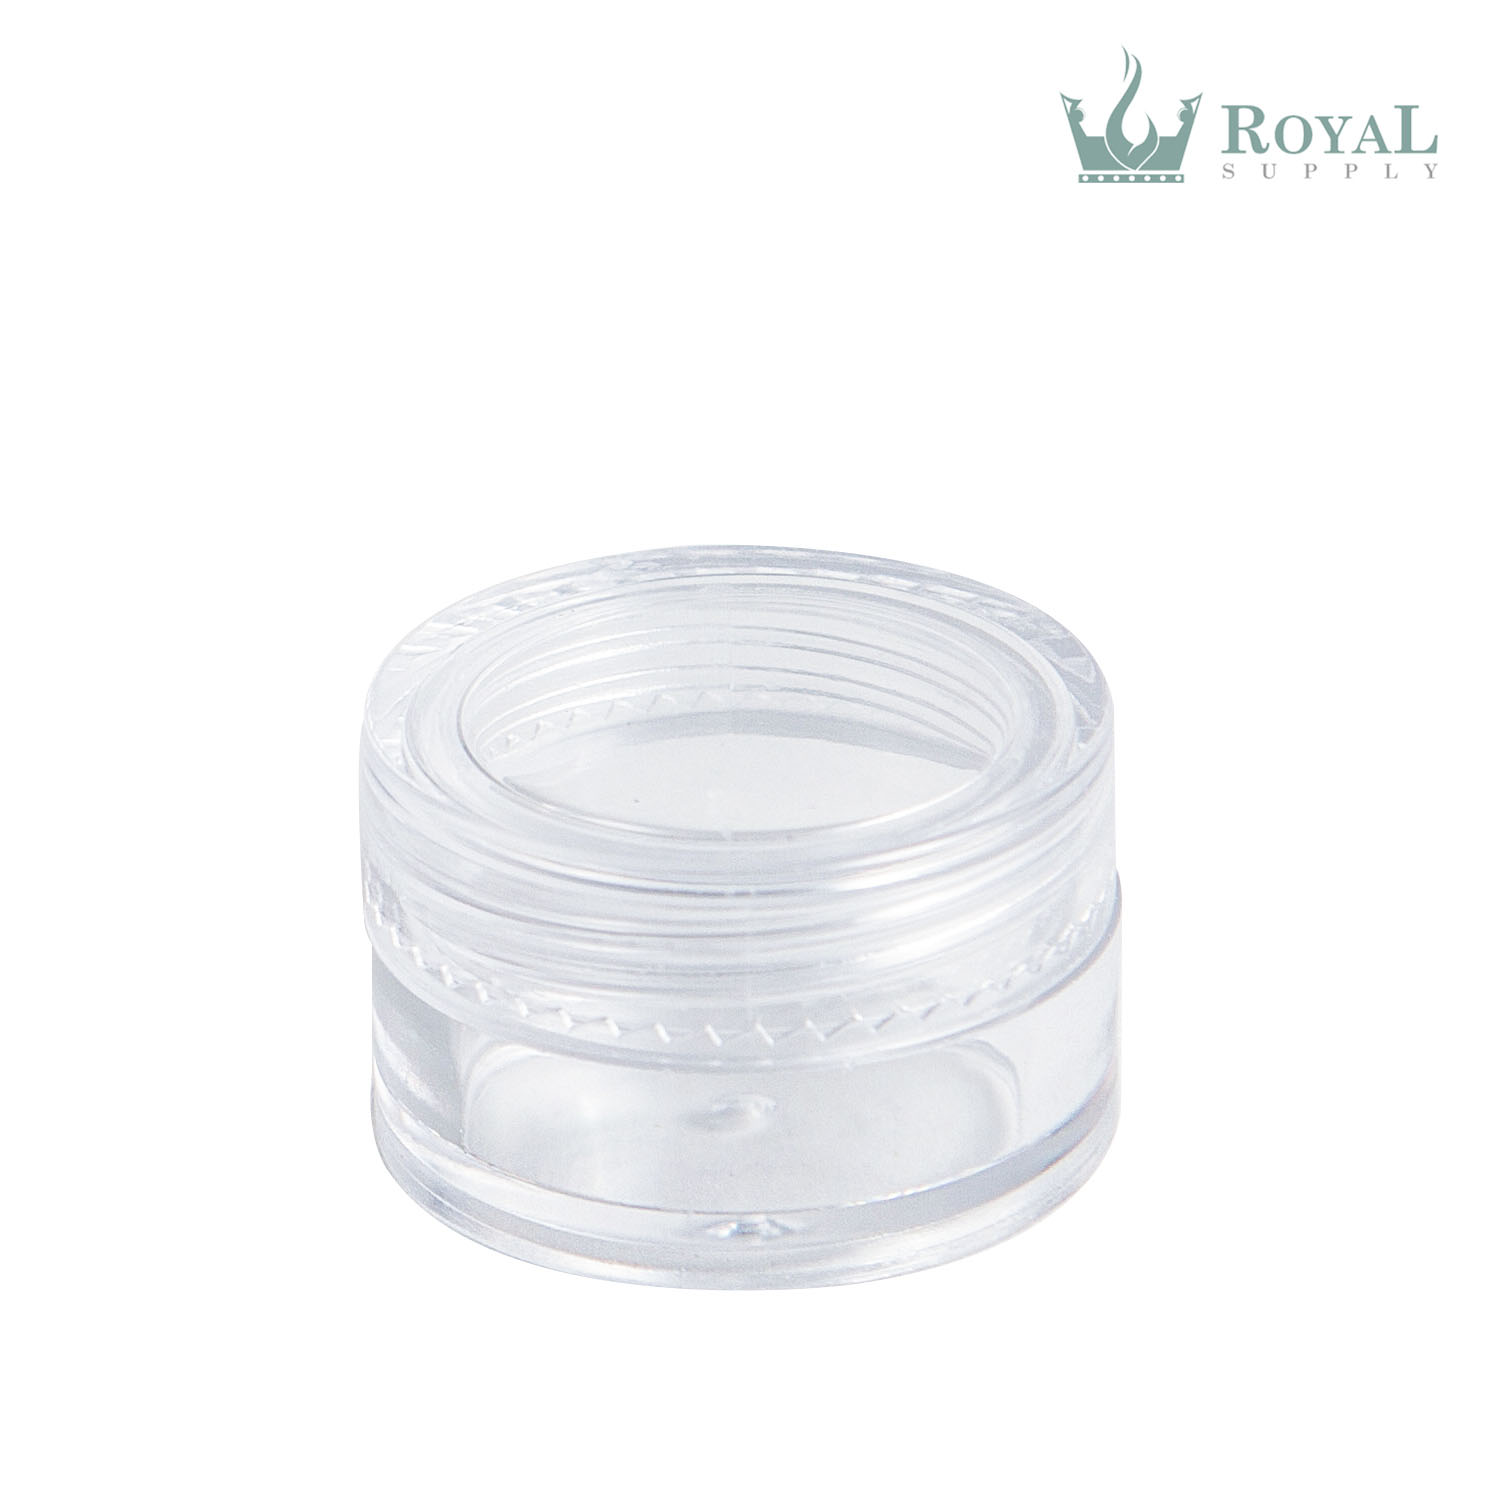 7 ml Plastic Concentrate Container